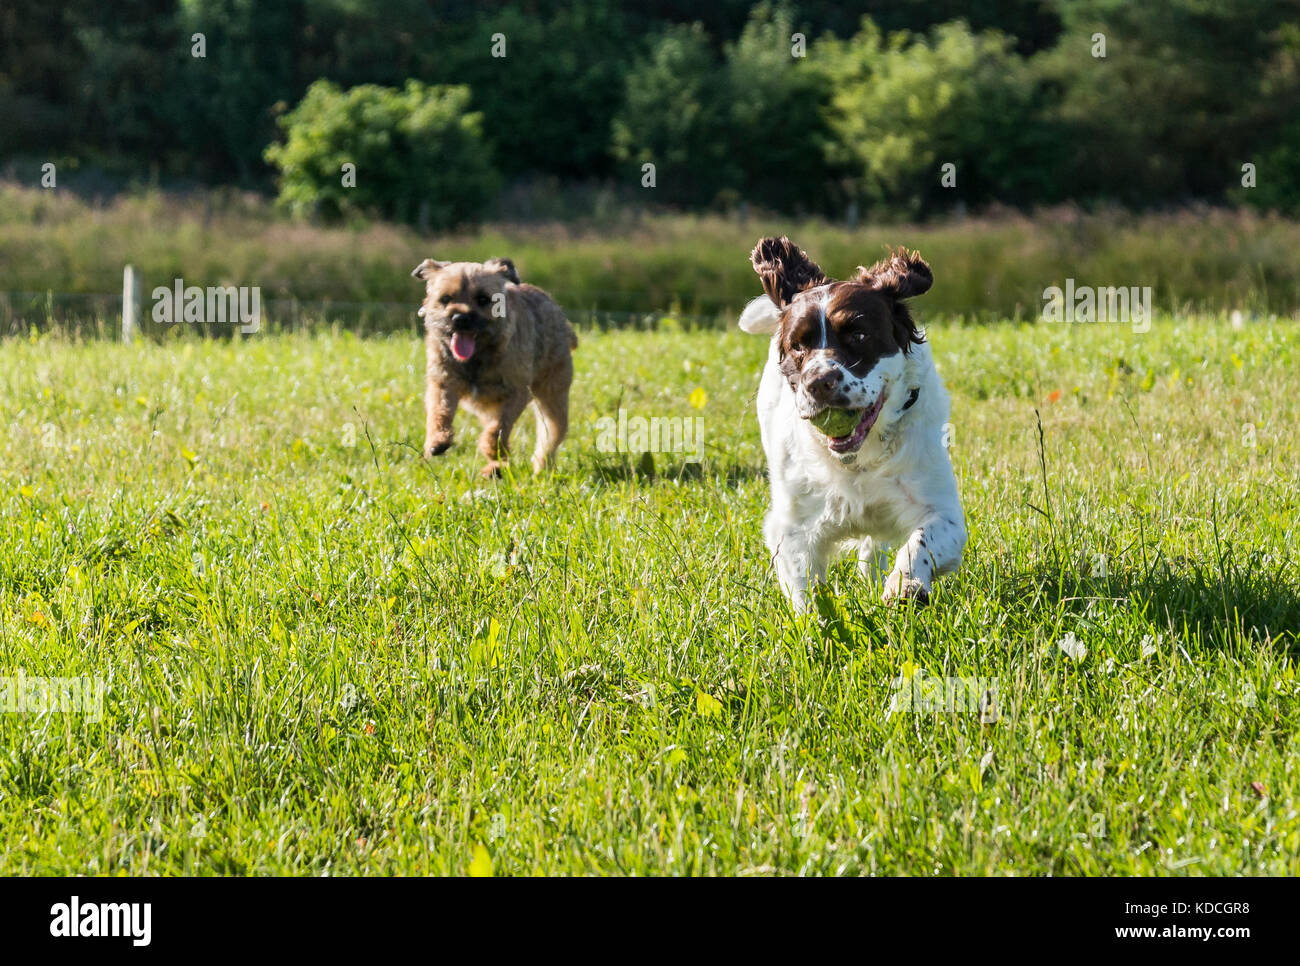 A Springer Spaniel and a Border Terrier chasing each other in a field, Springer Spaniel with a tennis ball in its Stock Photo